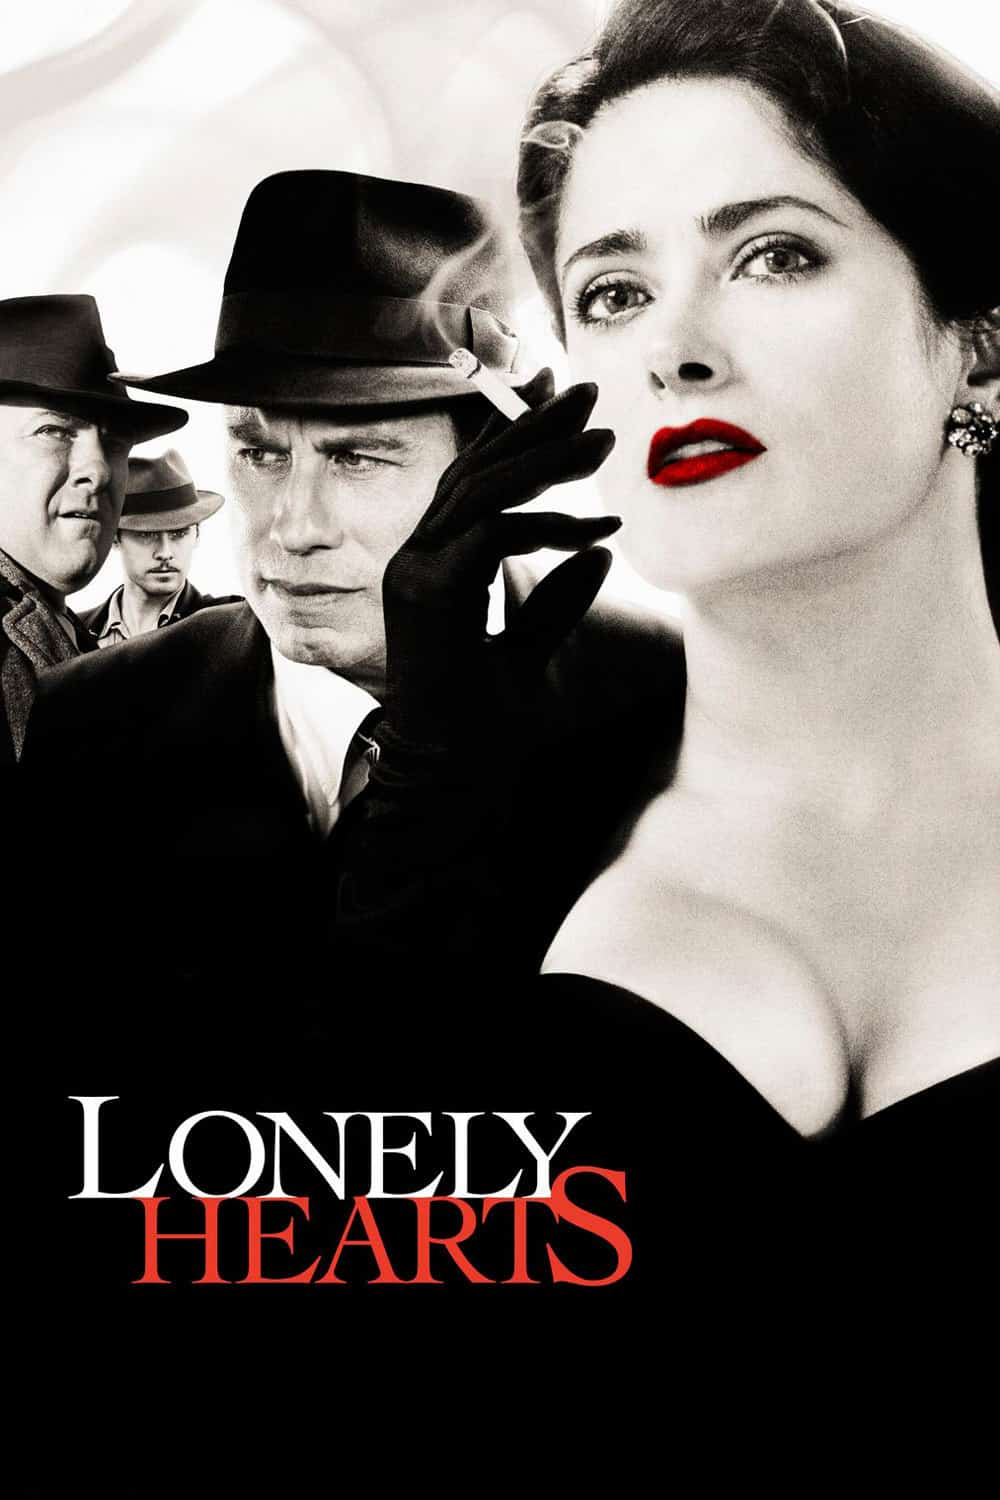 Lonely Hearts, 2006